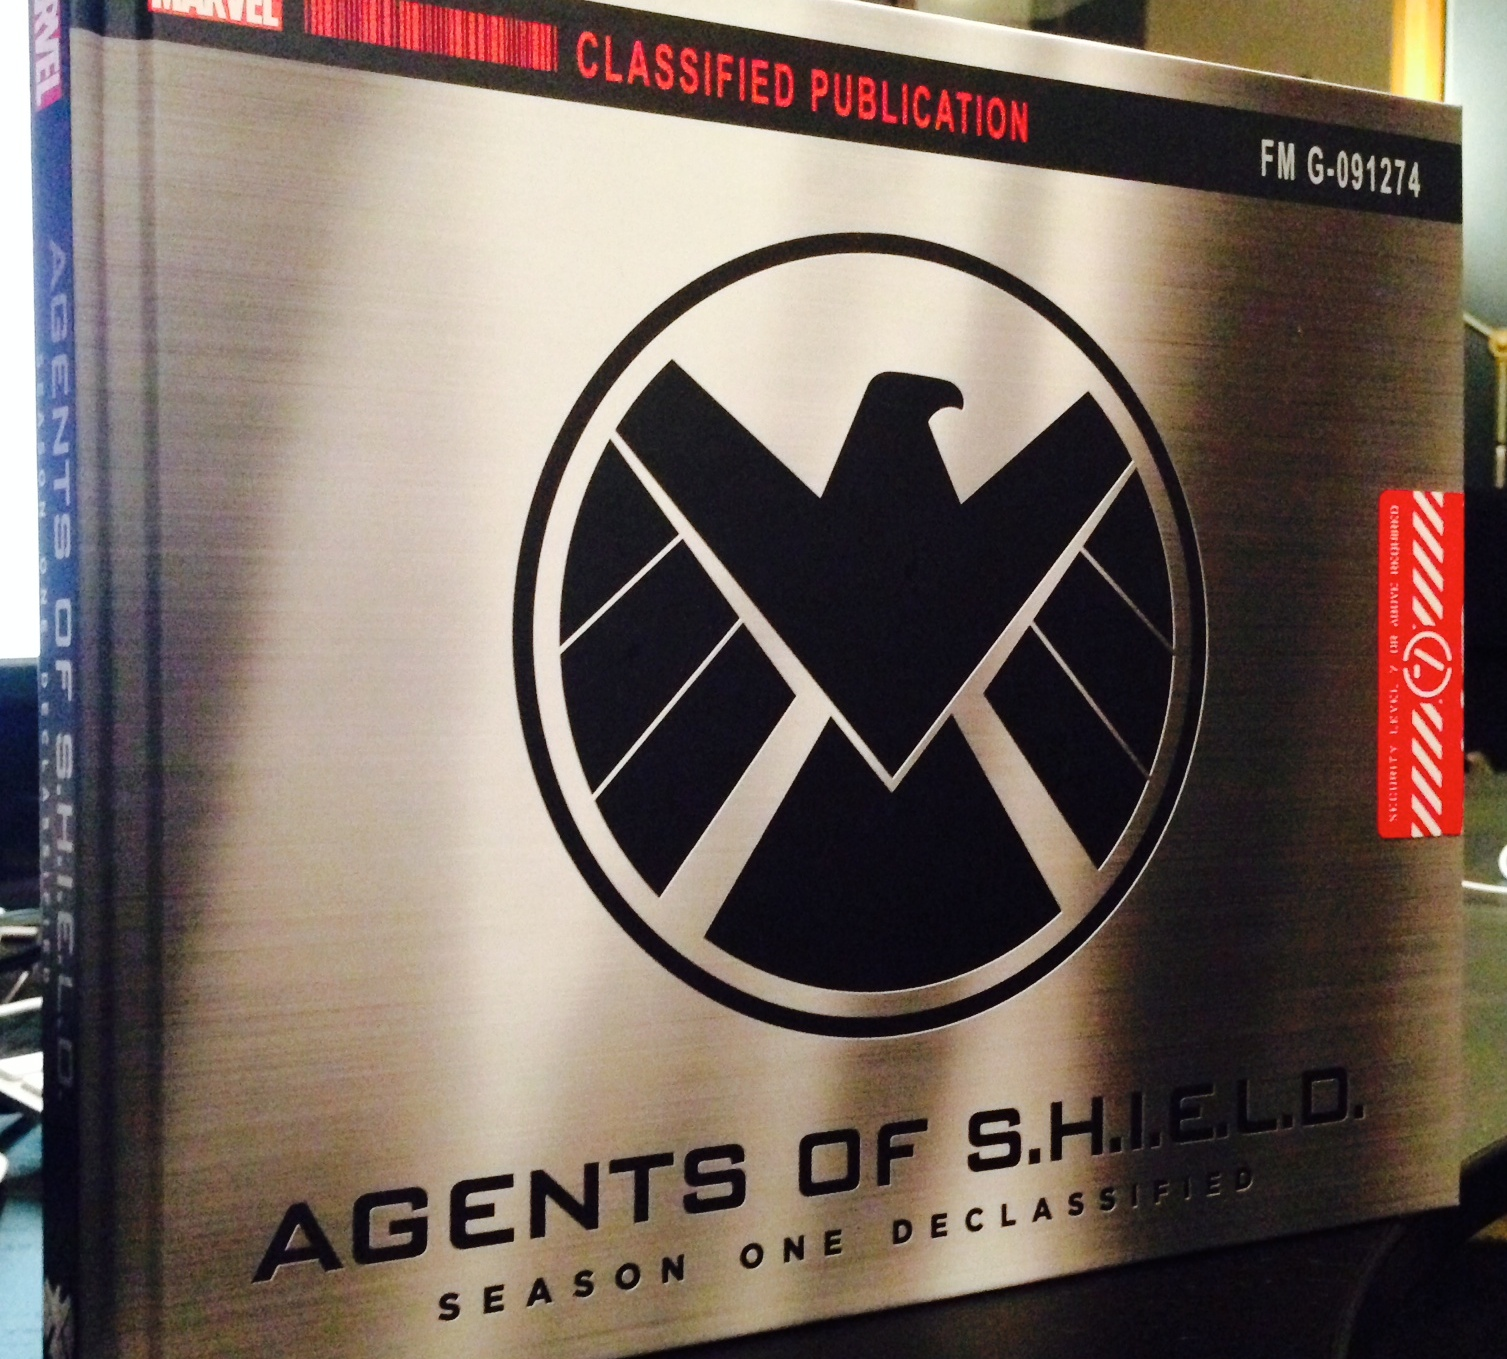 Marvel's Agents of S.H.I.E.L.D. Season One Declassified - published by Marvel - in all its glory.